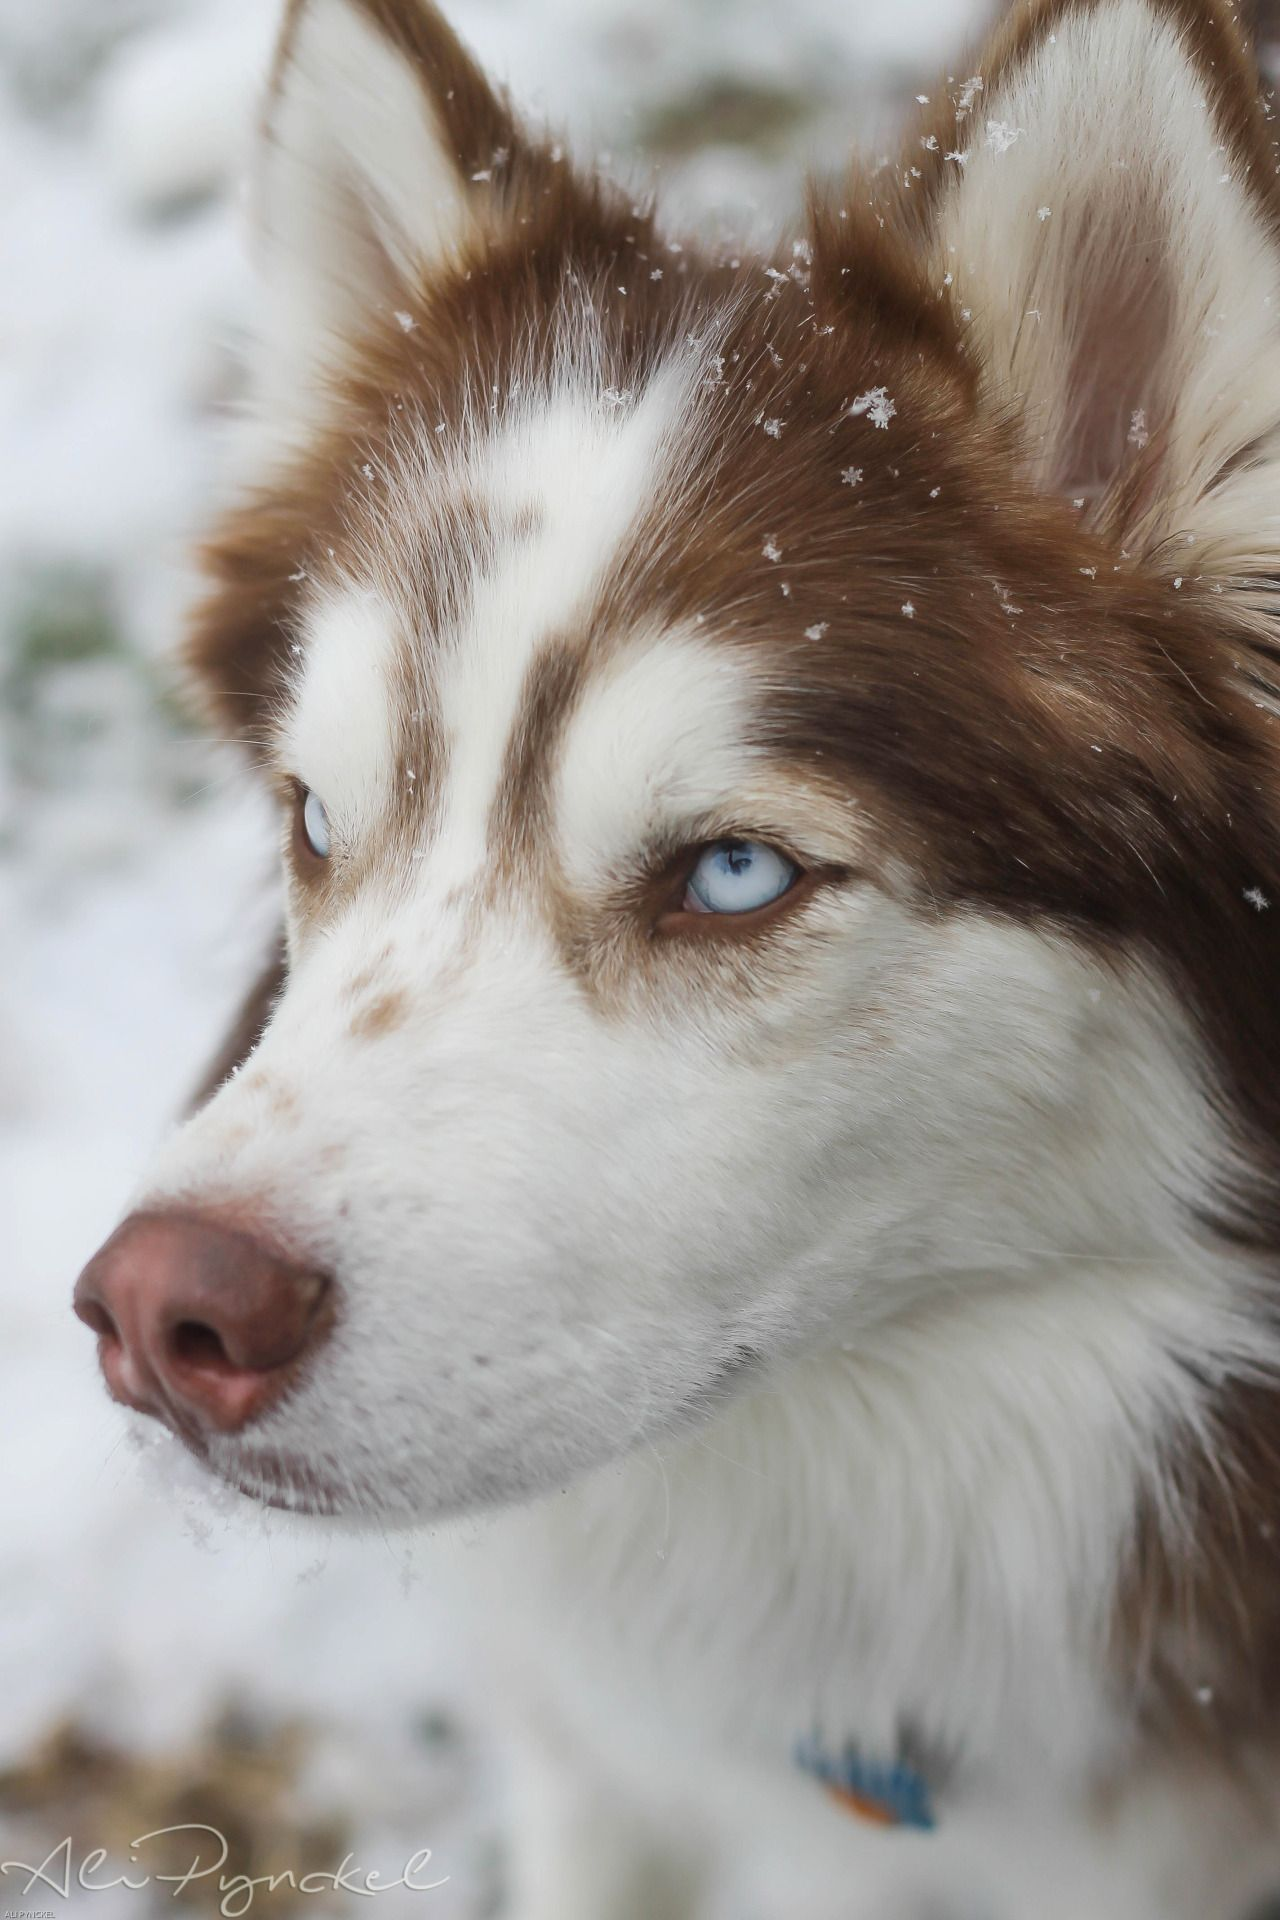 Husky This Is Like My Dog Mitter Kit He Is Solid Red Husky And